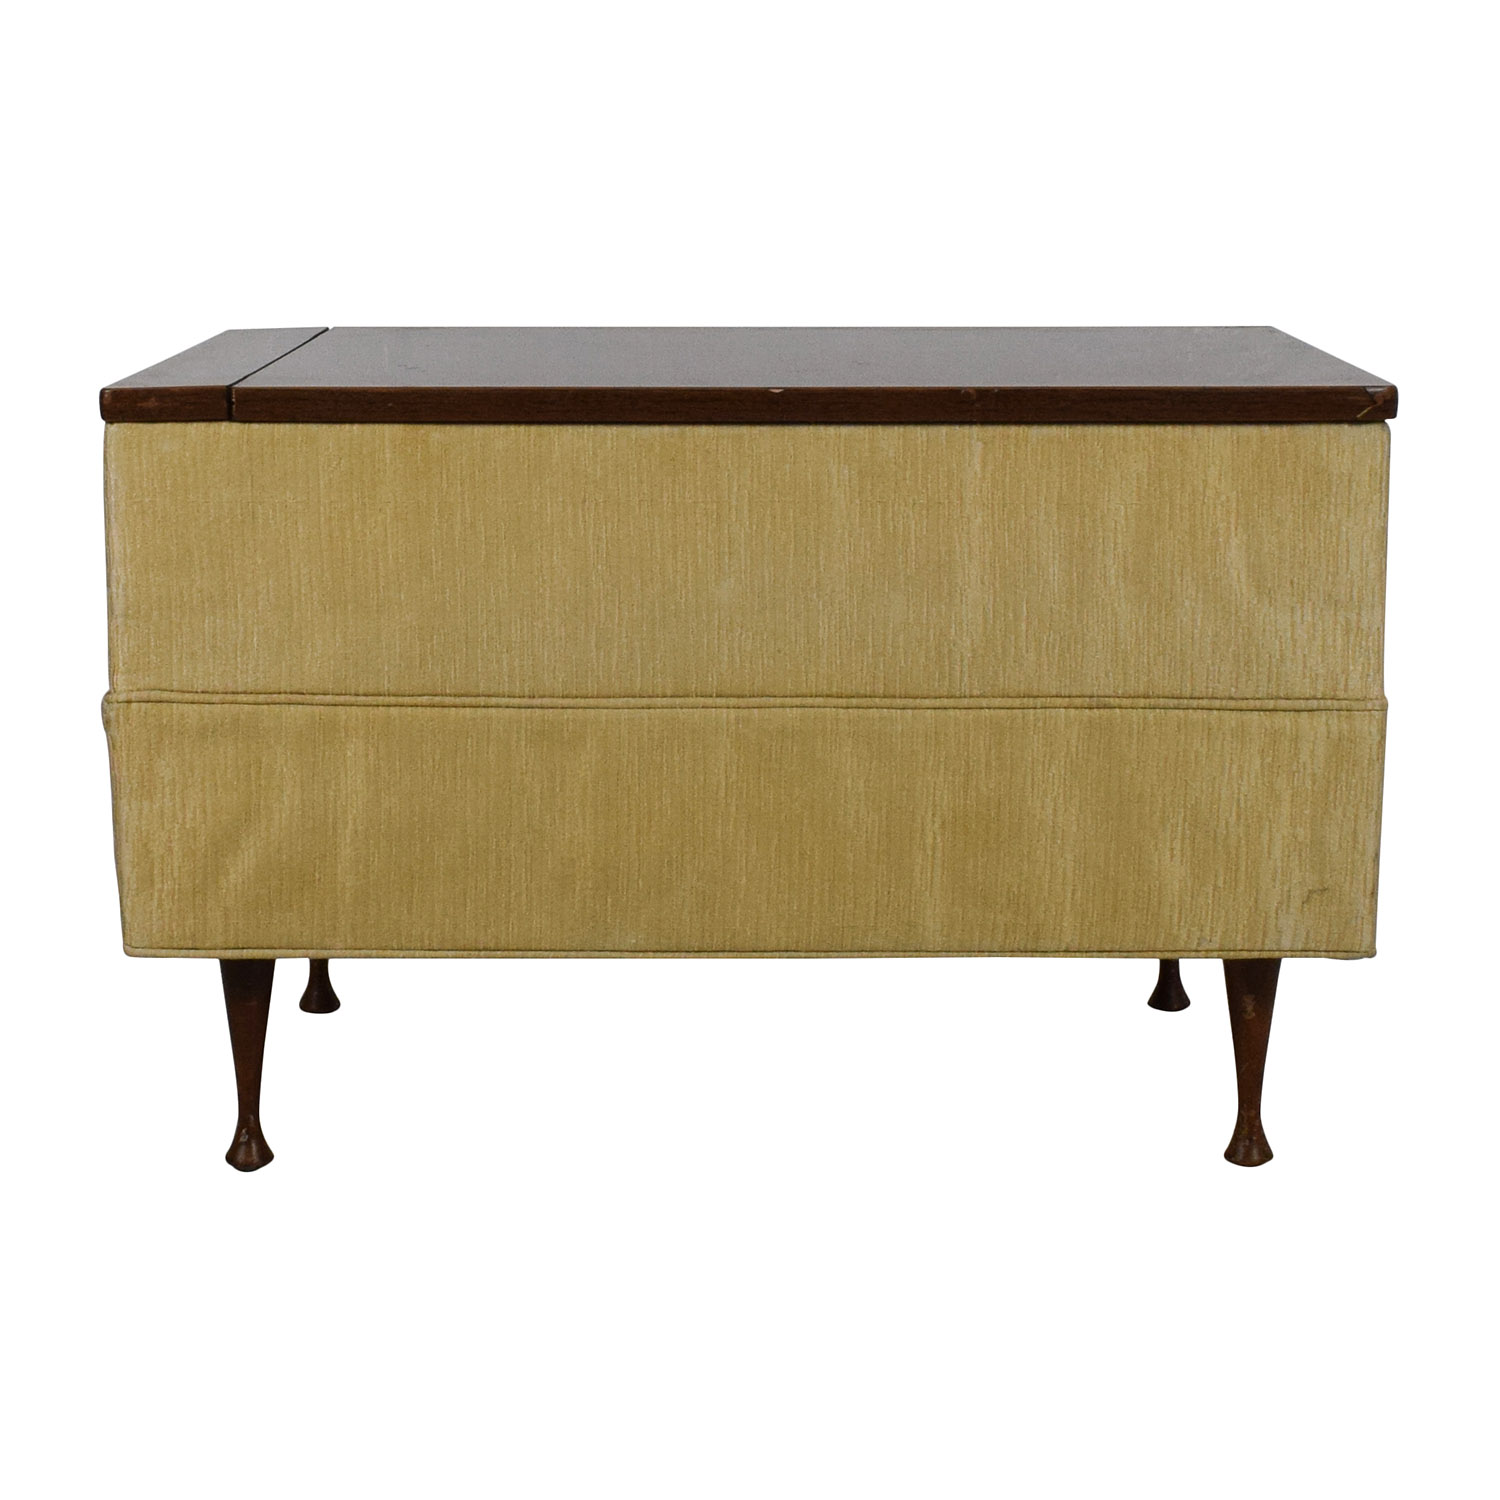 shop Vintage Ottoman Coffee Table with Storage Storage